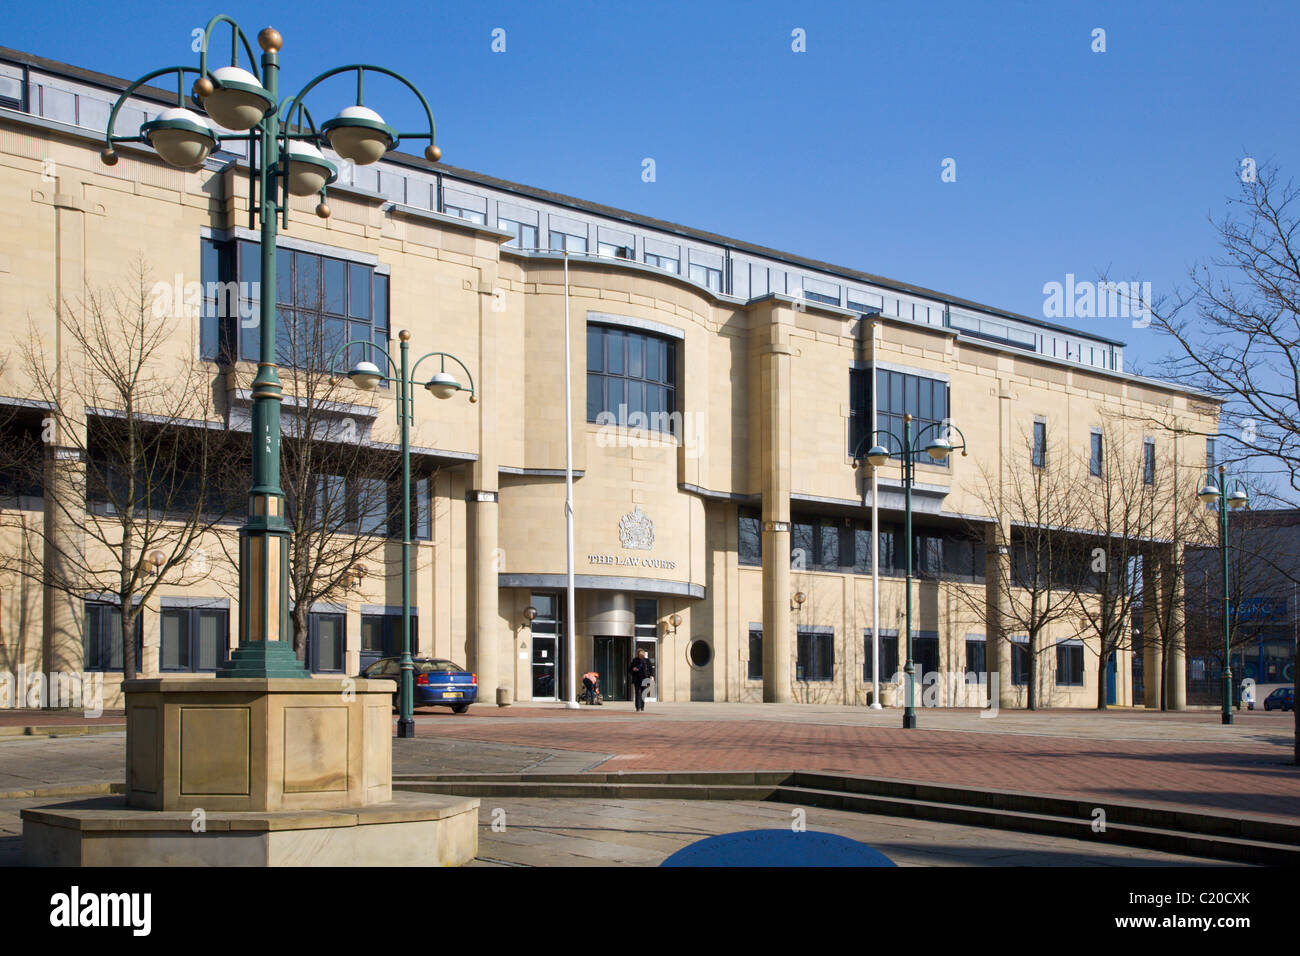 The Law Courts Bradford West Yorkshire England - Stock Image